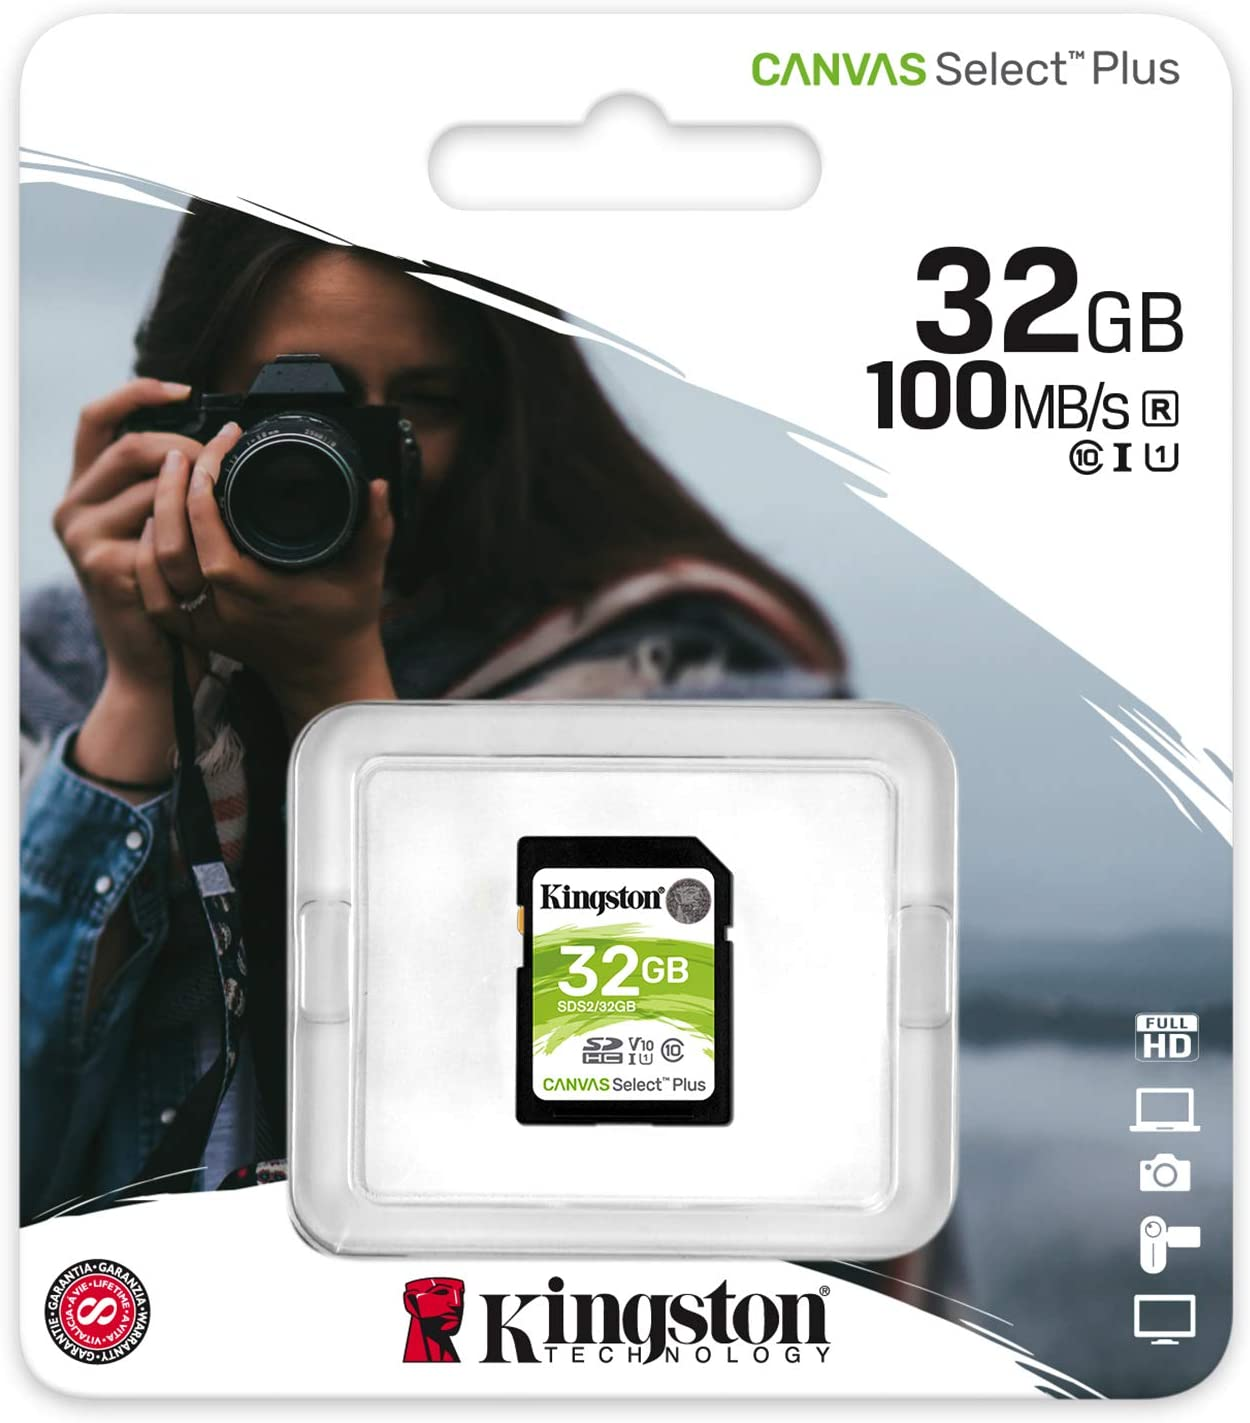 Kingston 32GB Huawei Mate 9 MicroSDHC Canvas Select Plus Card Verified by SanFlash. 100MBs Works with Kingston